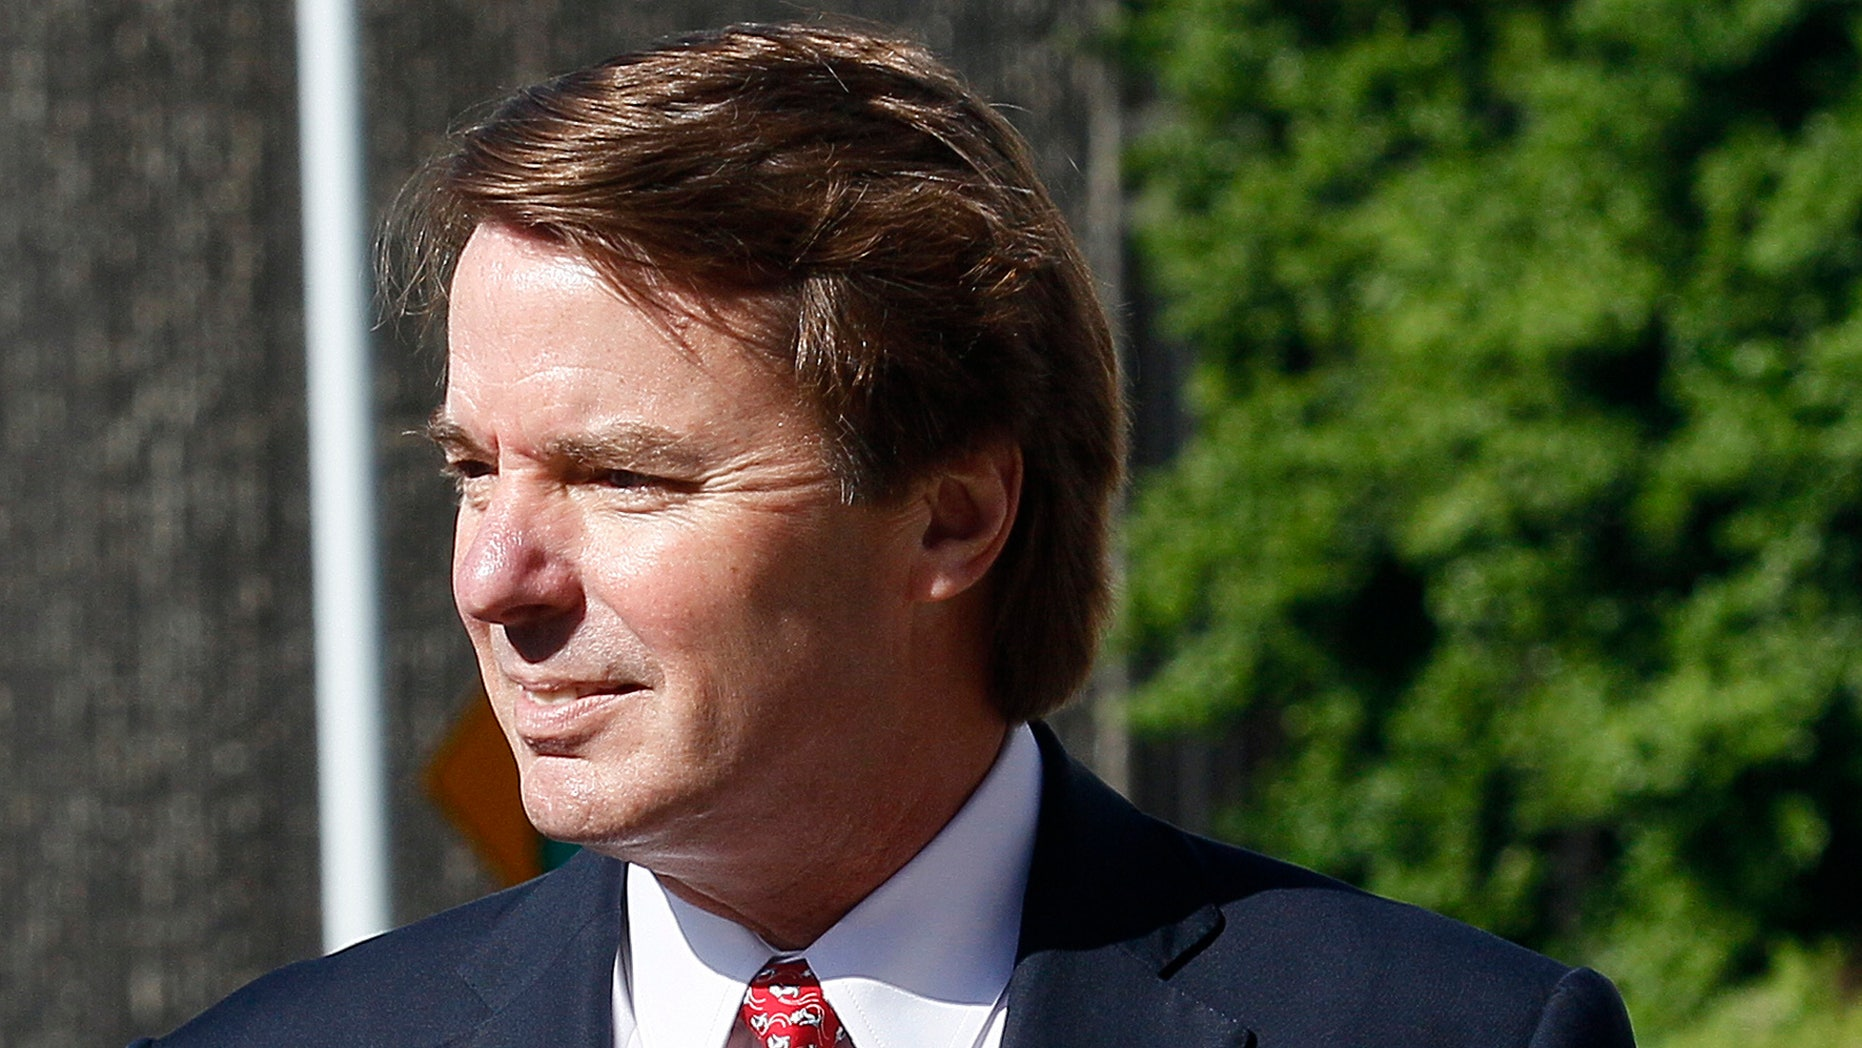 May 10: Former presidential candidate and Sen. John Edwards arrives at a federal courthouse in Greensboro, N.C.